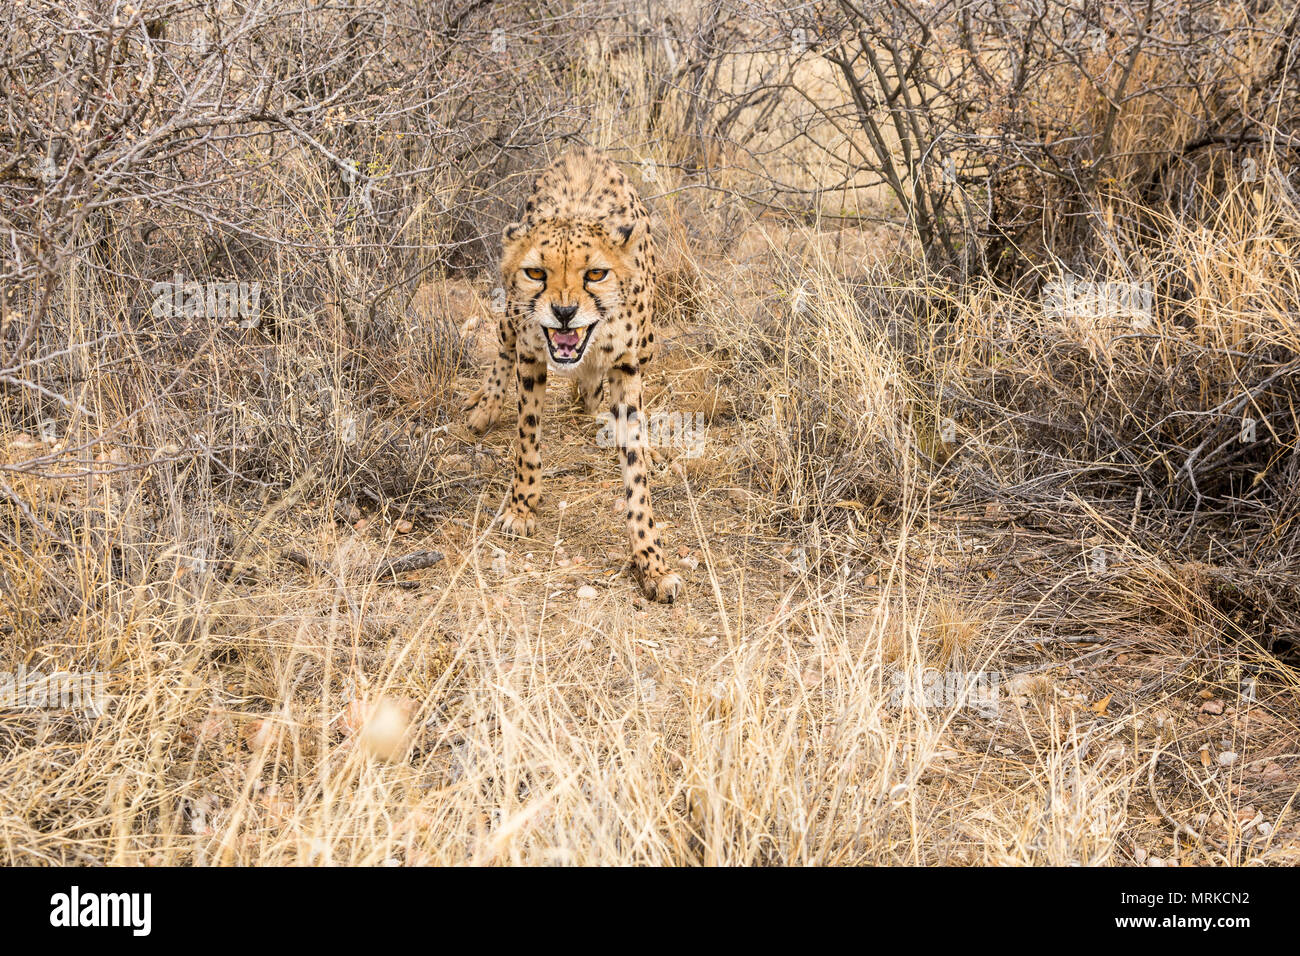 Cheetah snarling growling at camera - Stock Image